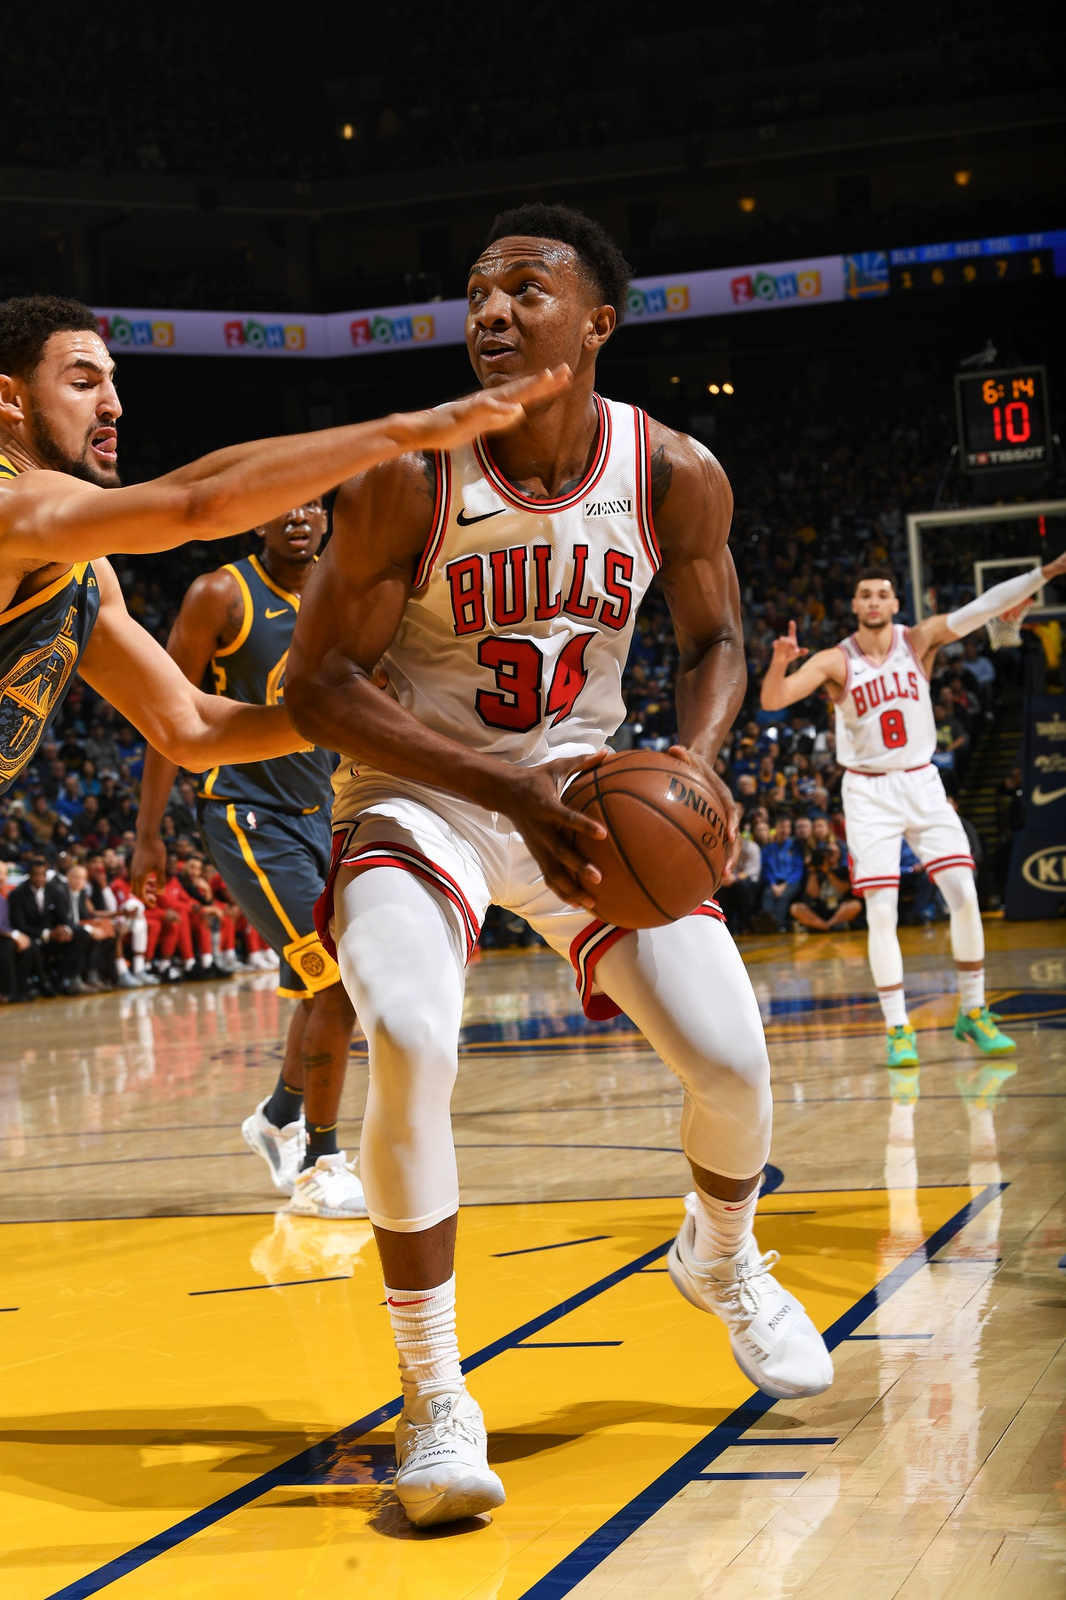 Wendell Carter Jr. #34 of the Chicago Bulls handles the ball against the Golden State Warrioris on January 11, 2019 at ORACLE Arena in Oakland, California.